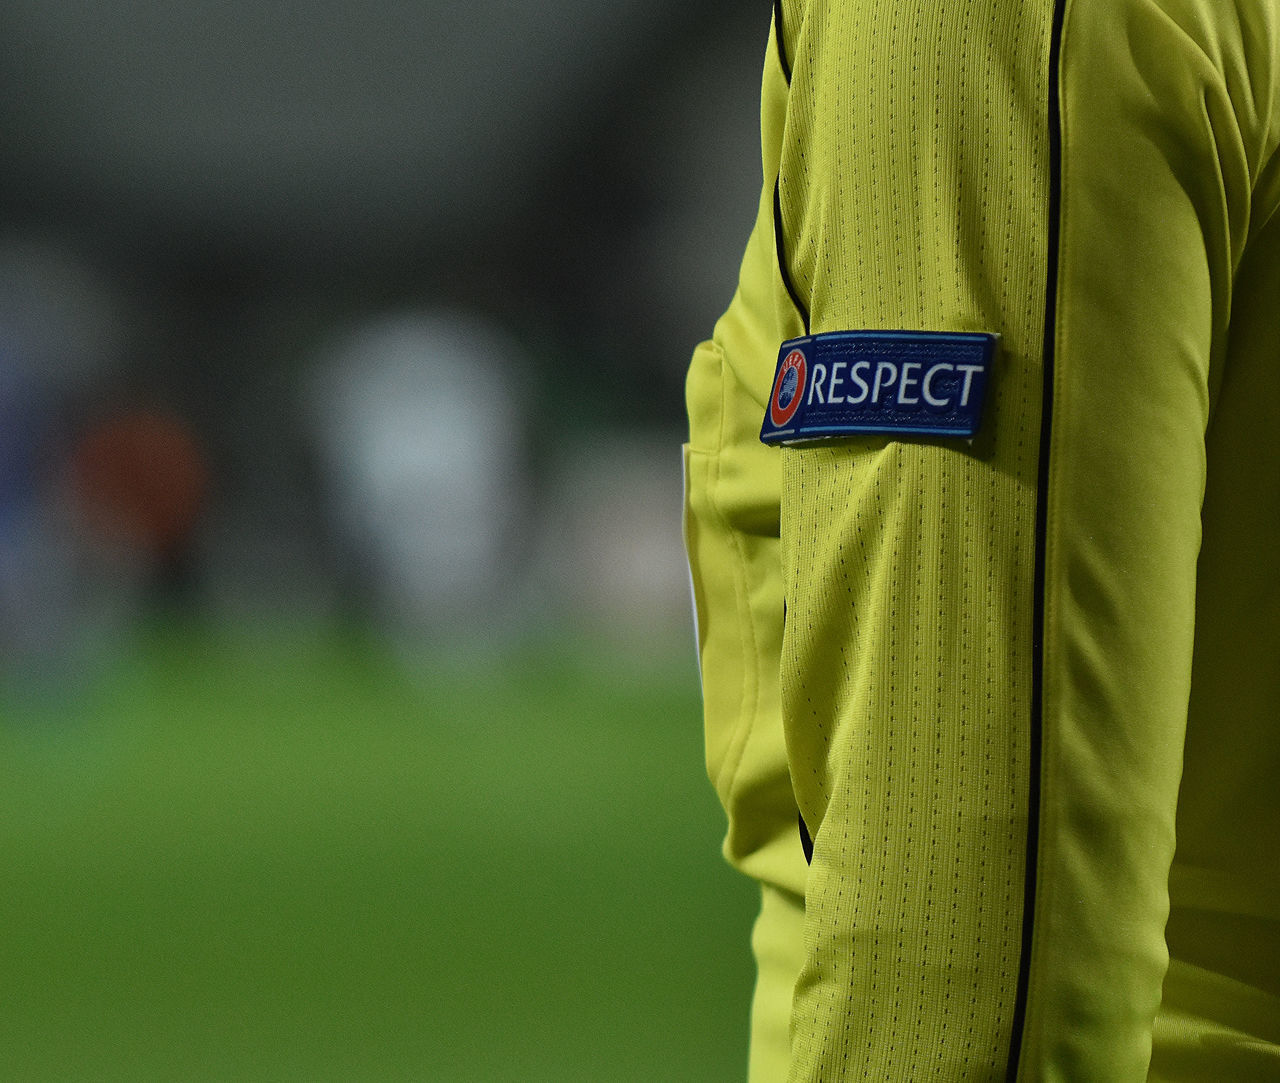 Referee in UEFA Europa League European  Referee Respect UEFA Assistant Referee Close-up Day Focus On Foreground Jacket Match - Sport Men One Person Outdoors Police Uniform Protective Workwear Real People Rear View Safety Standing Uefa Euro League Uniform Be. Ready.